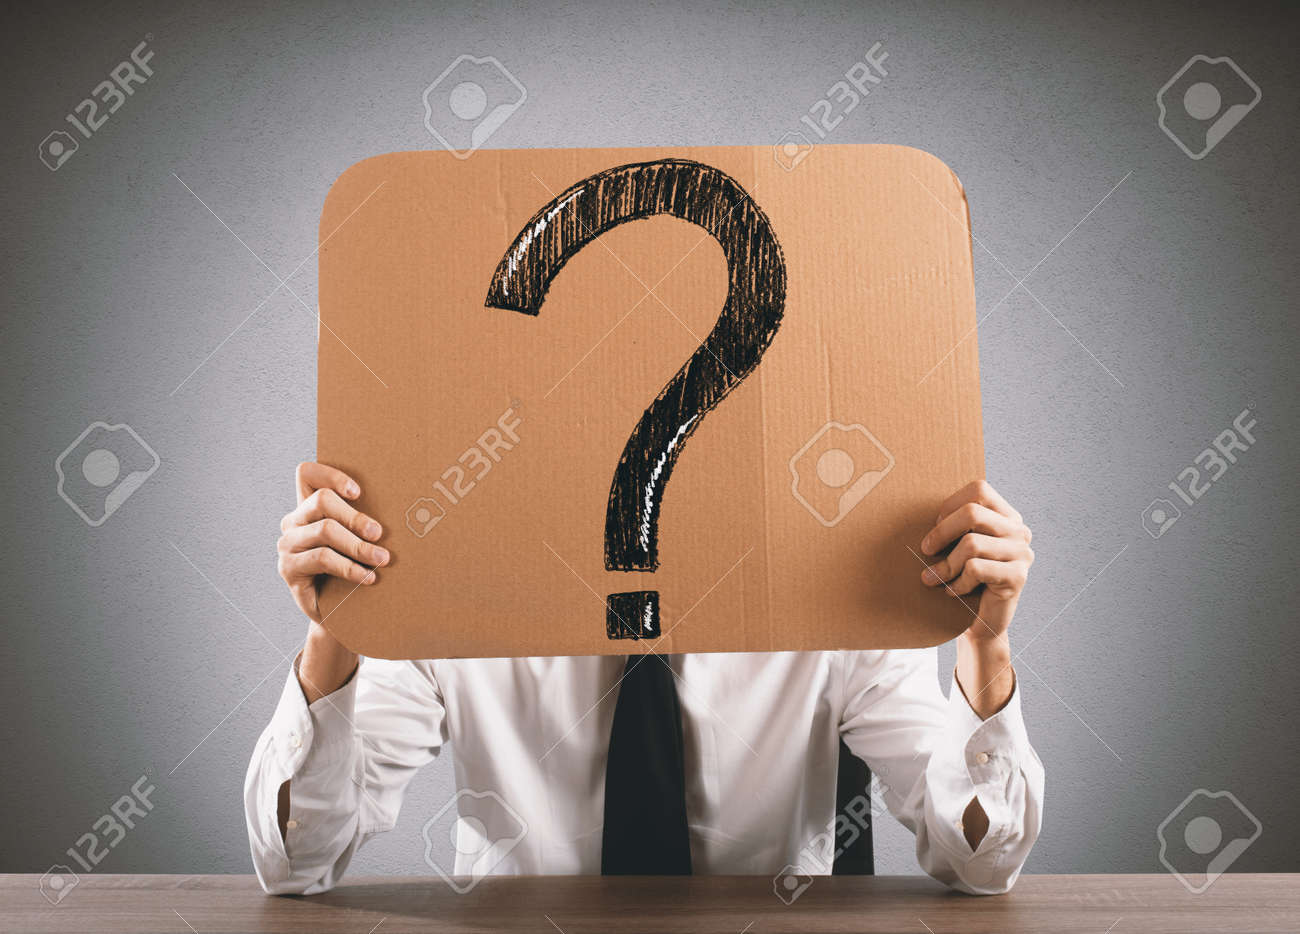 Businessman in the office holds a cardboard with big question mark Standard-Bild - 64803715